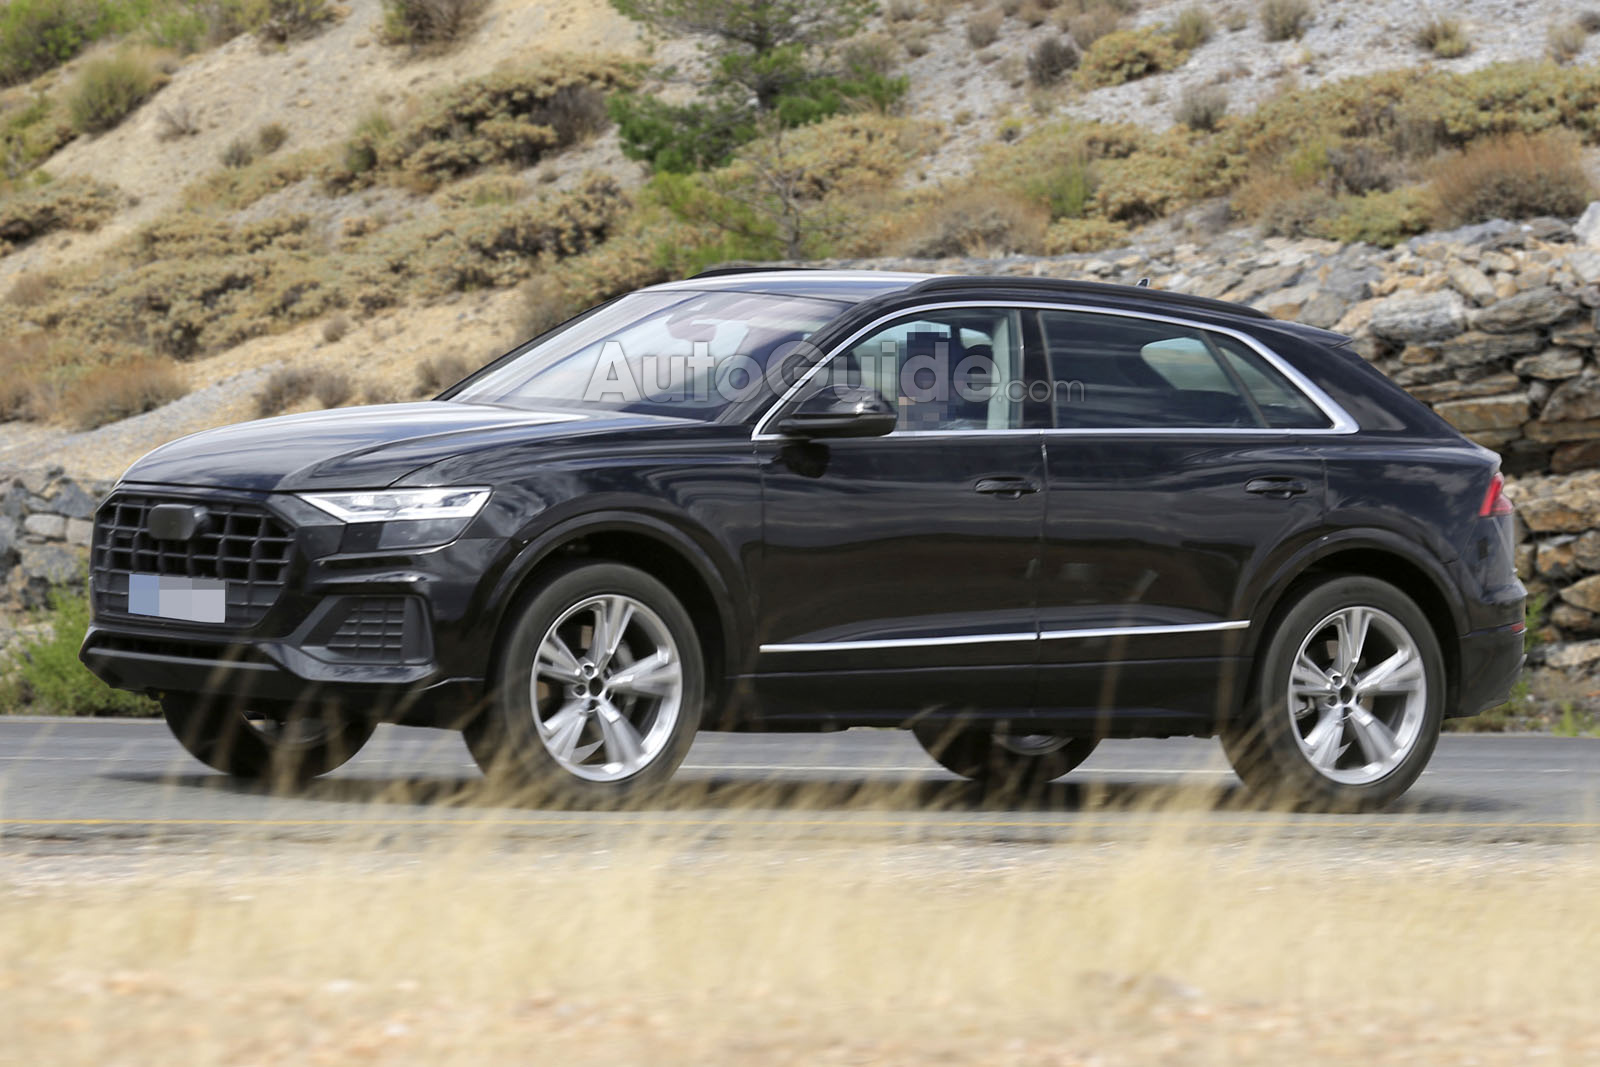 2019 audi q8 spied fully exposed news. Black Bedroom Furniture Sets. Home Design Ideas